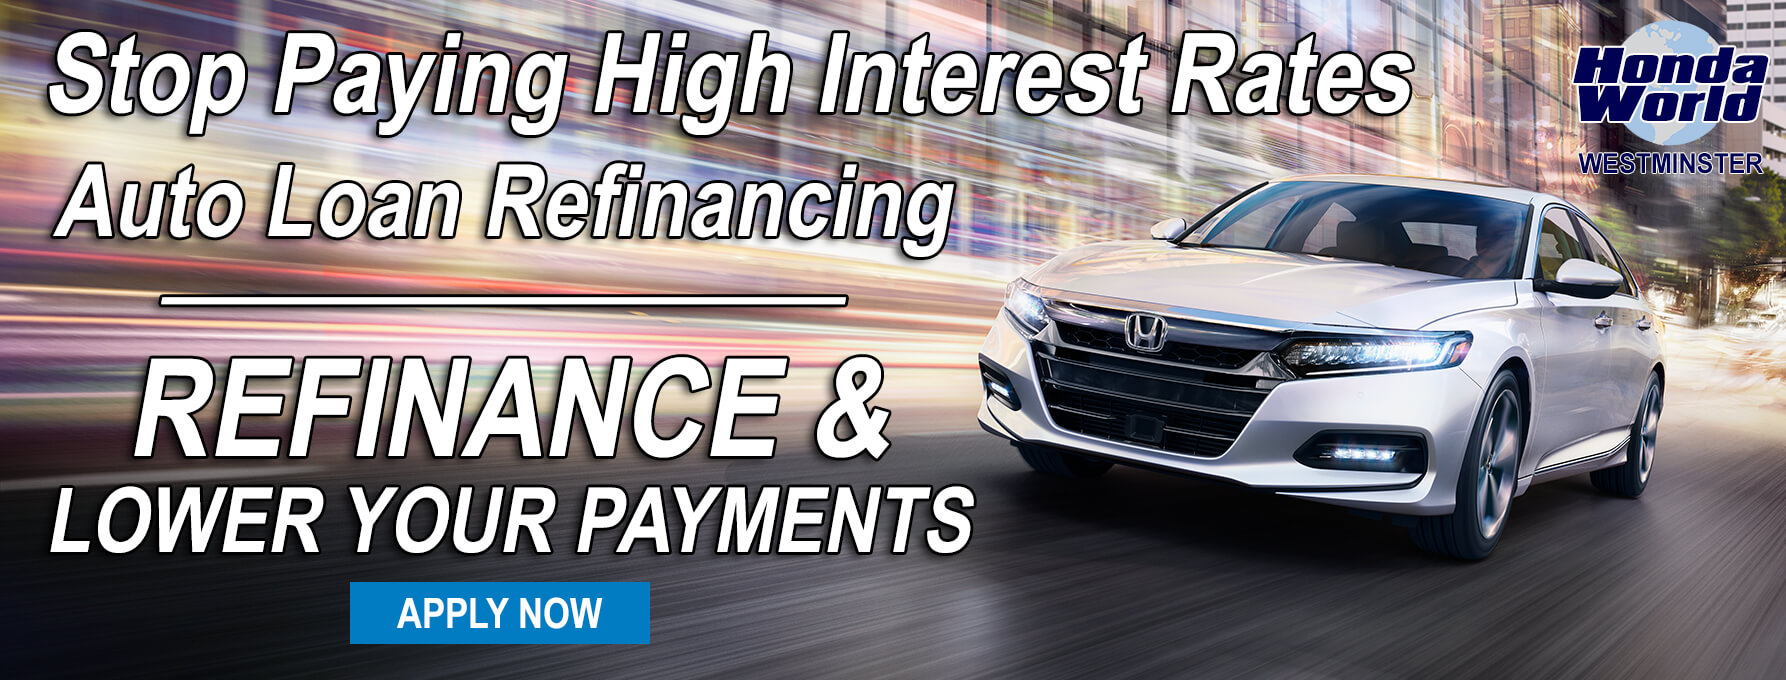 Orange County Auto Loan Honda Refinacing Honda World